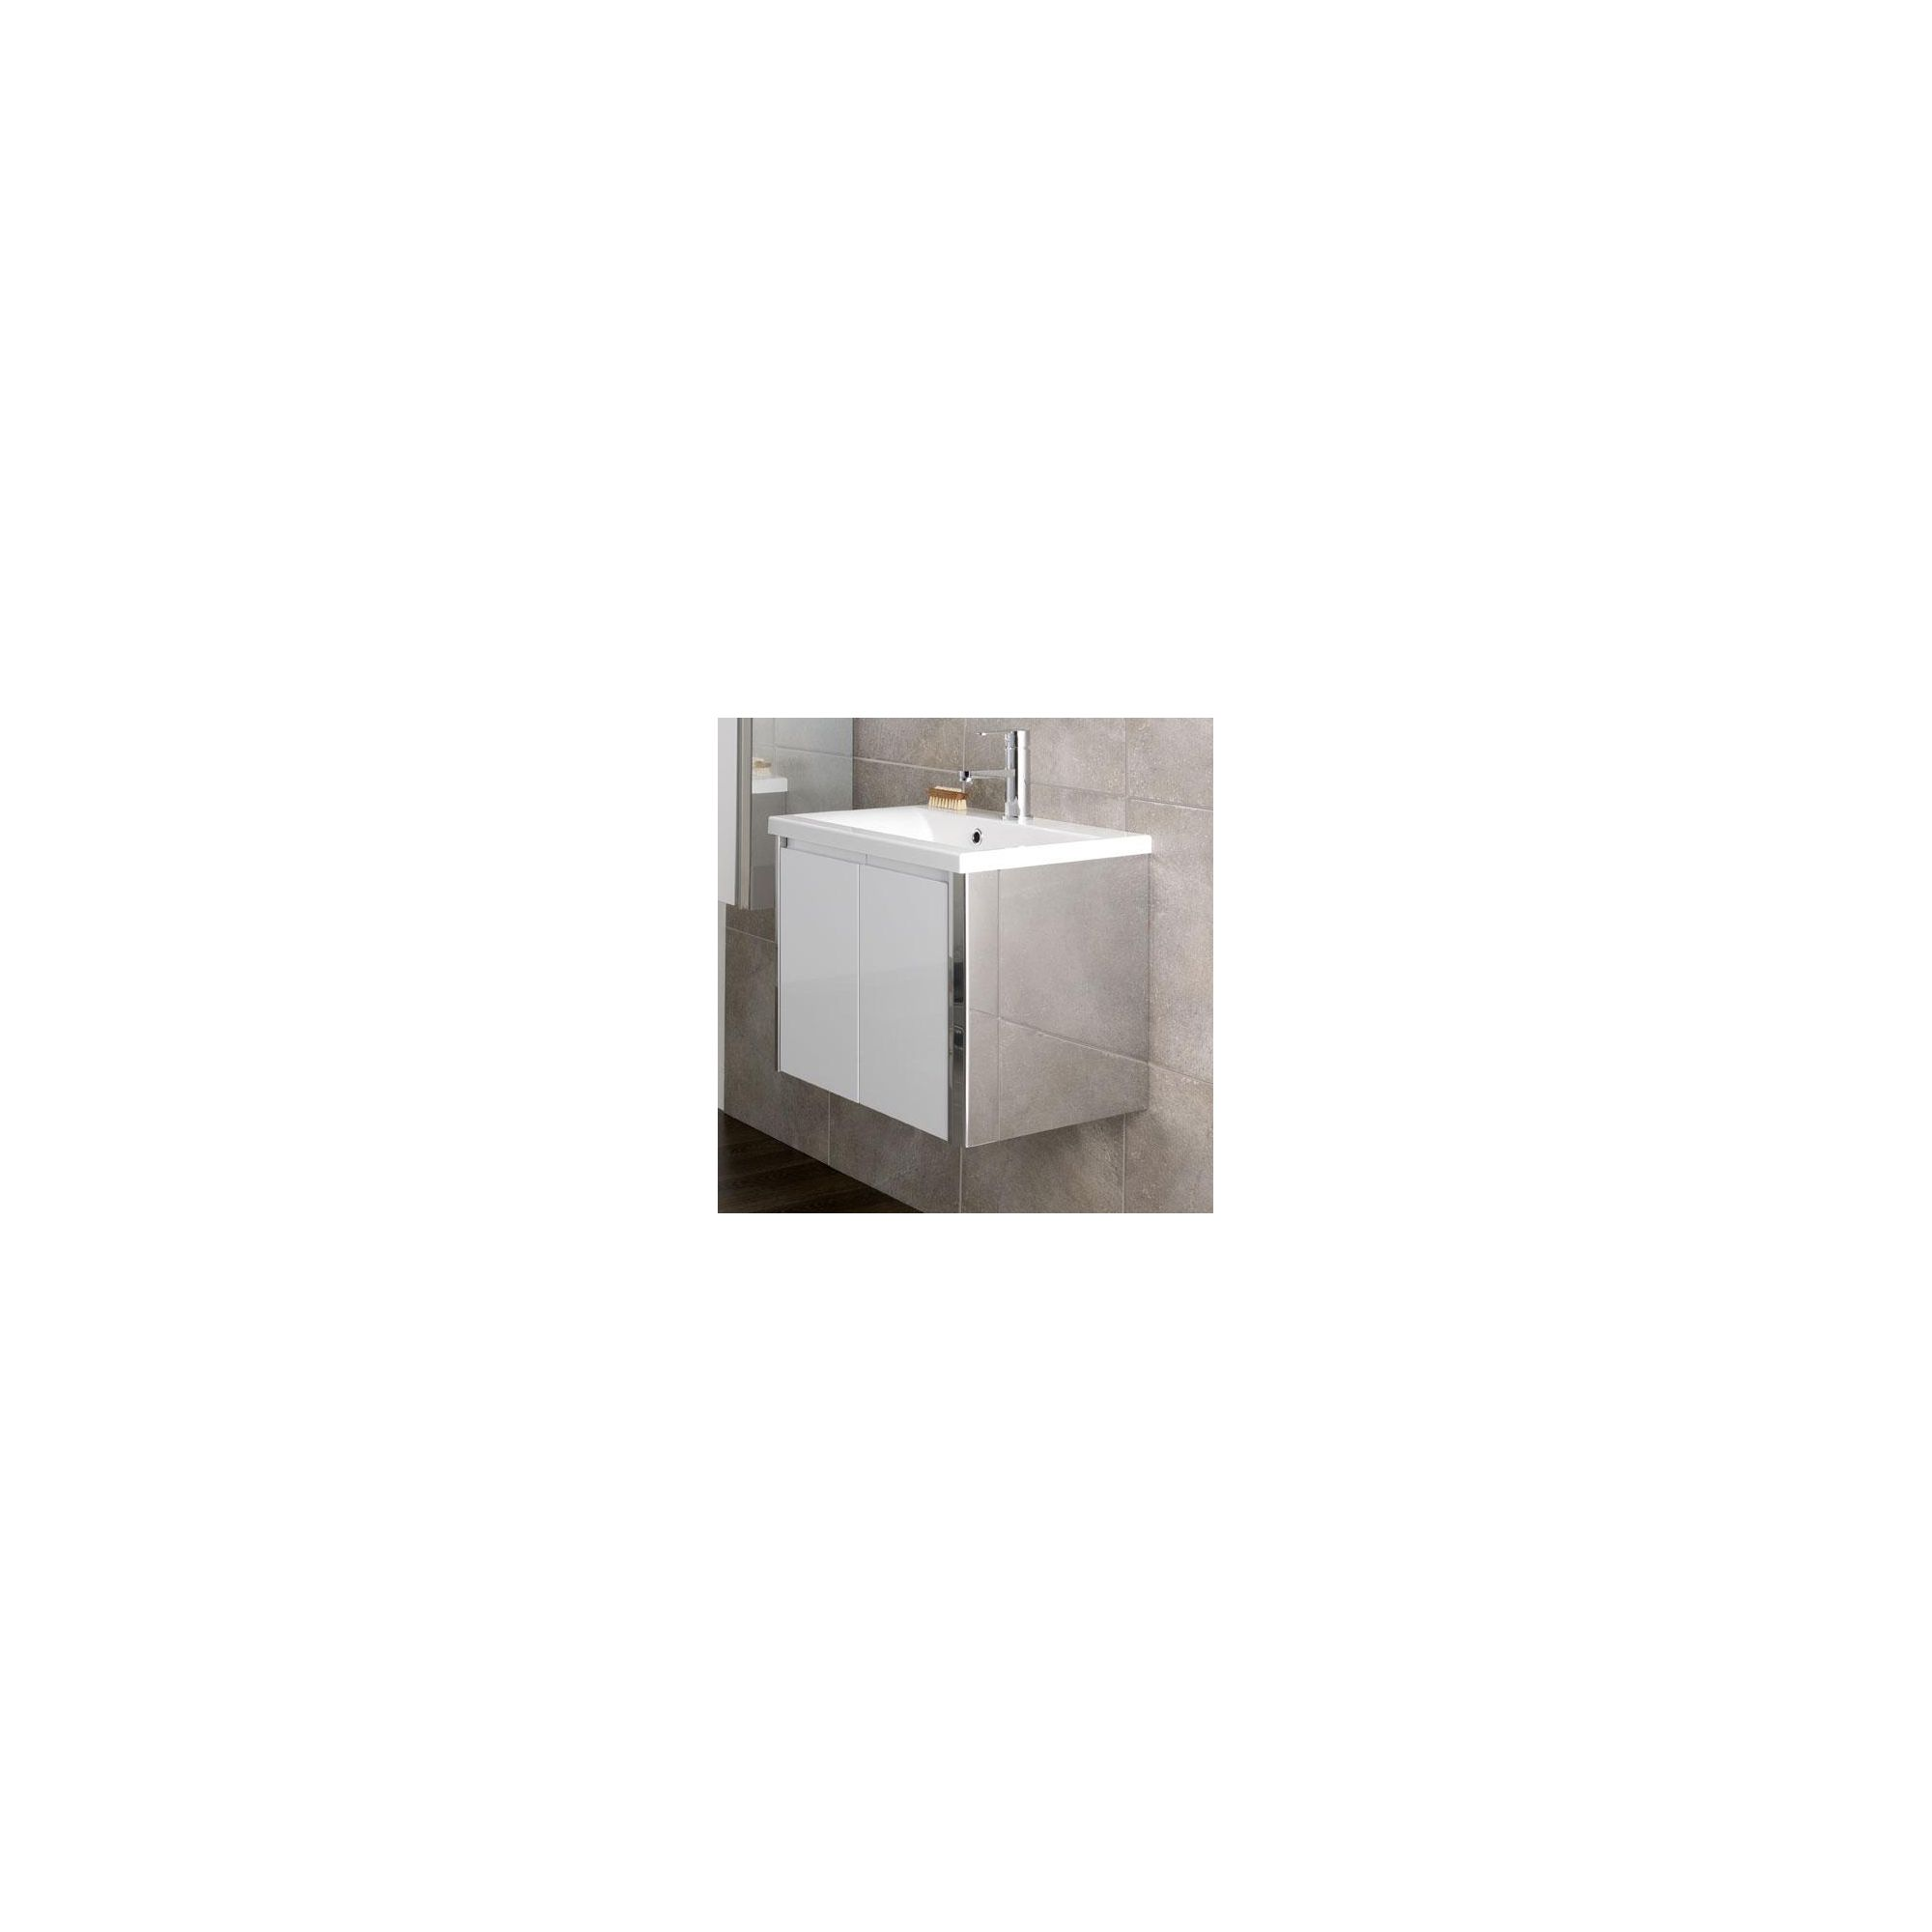 Duchy Trehane White Wall Hung 2 Door Vanity Unit and Basin - 580mm Wide x 390mm Deep